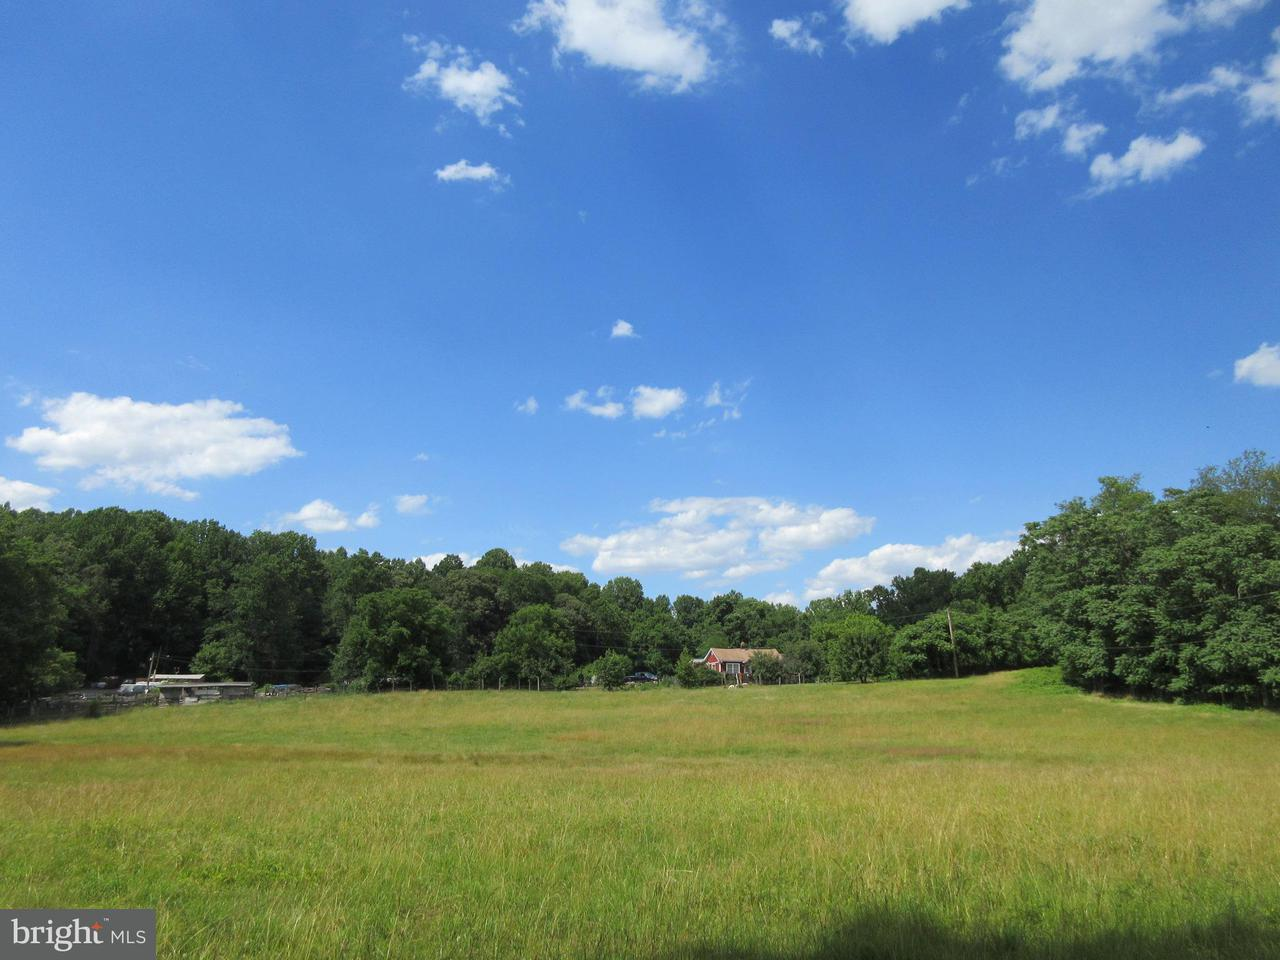 Land for Sale at 1294 DEFENSE HWY 1294 DEFENSE HWY Gambrills, Maryland 21054 United States